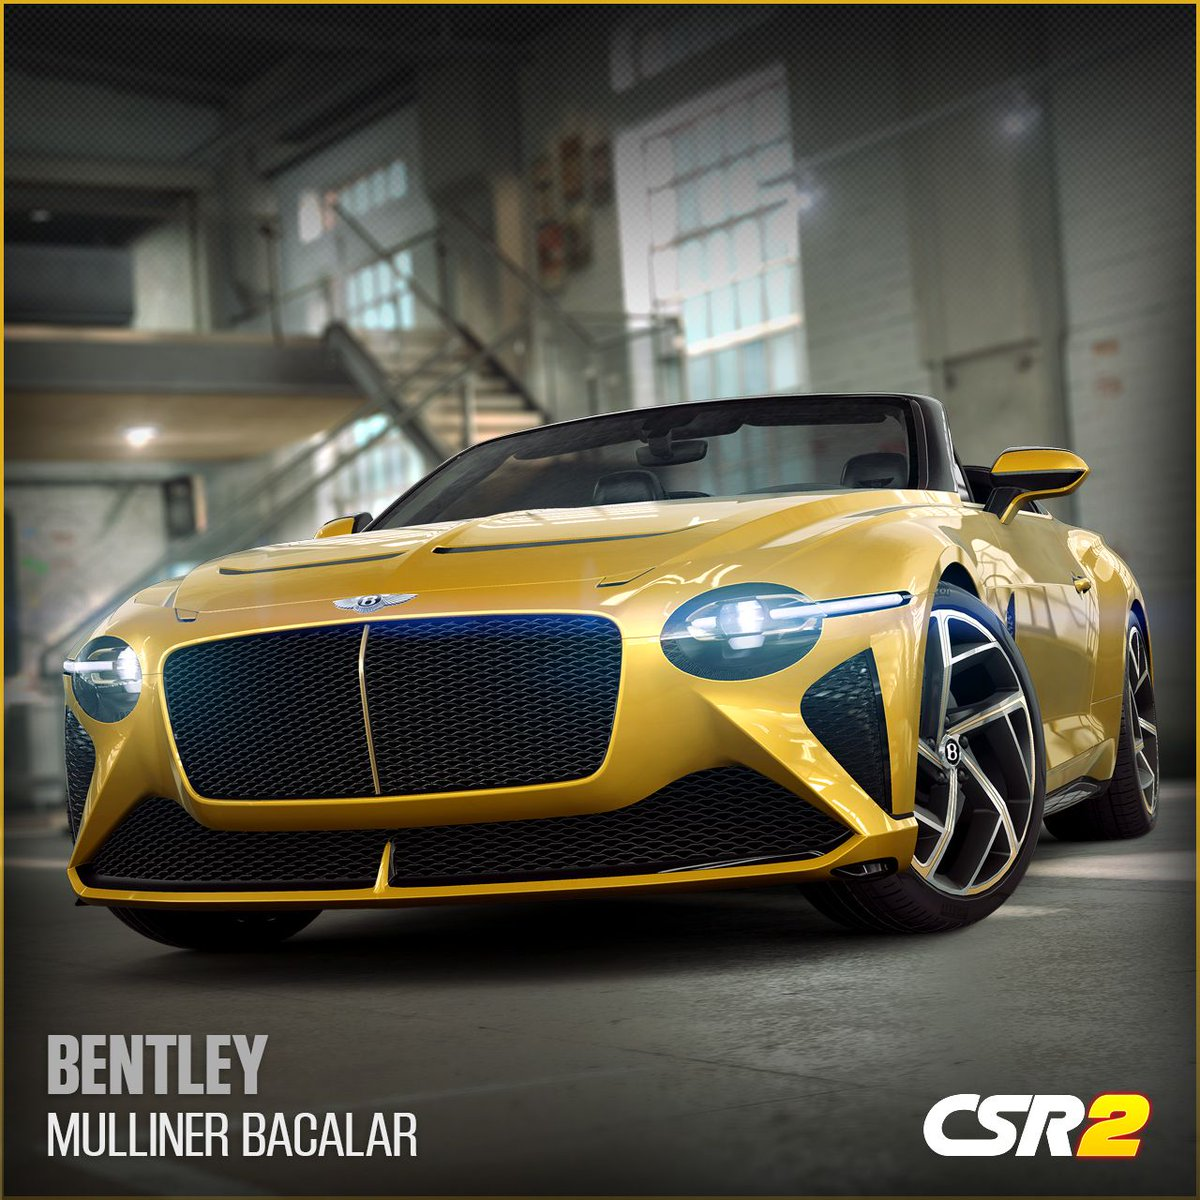 The rarest two-door Bentley of the modern era comes to #CSR2. Dynamically-sculpted, the #Bentley #Mulliner #Bacalar is available now, so get down to the track and be the most exclusive racer on the streets. https://t.co/qF2q3Mxt4n @BentleyMotors https://t.co/Um40gV2MCa